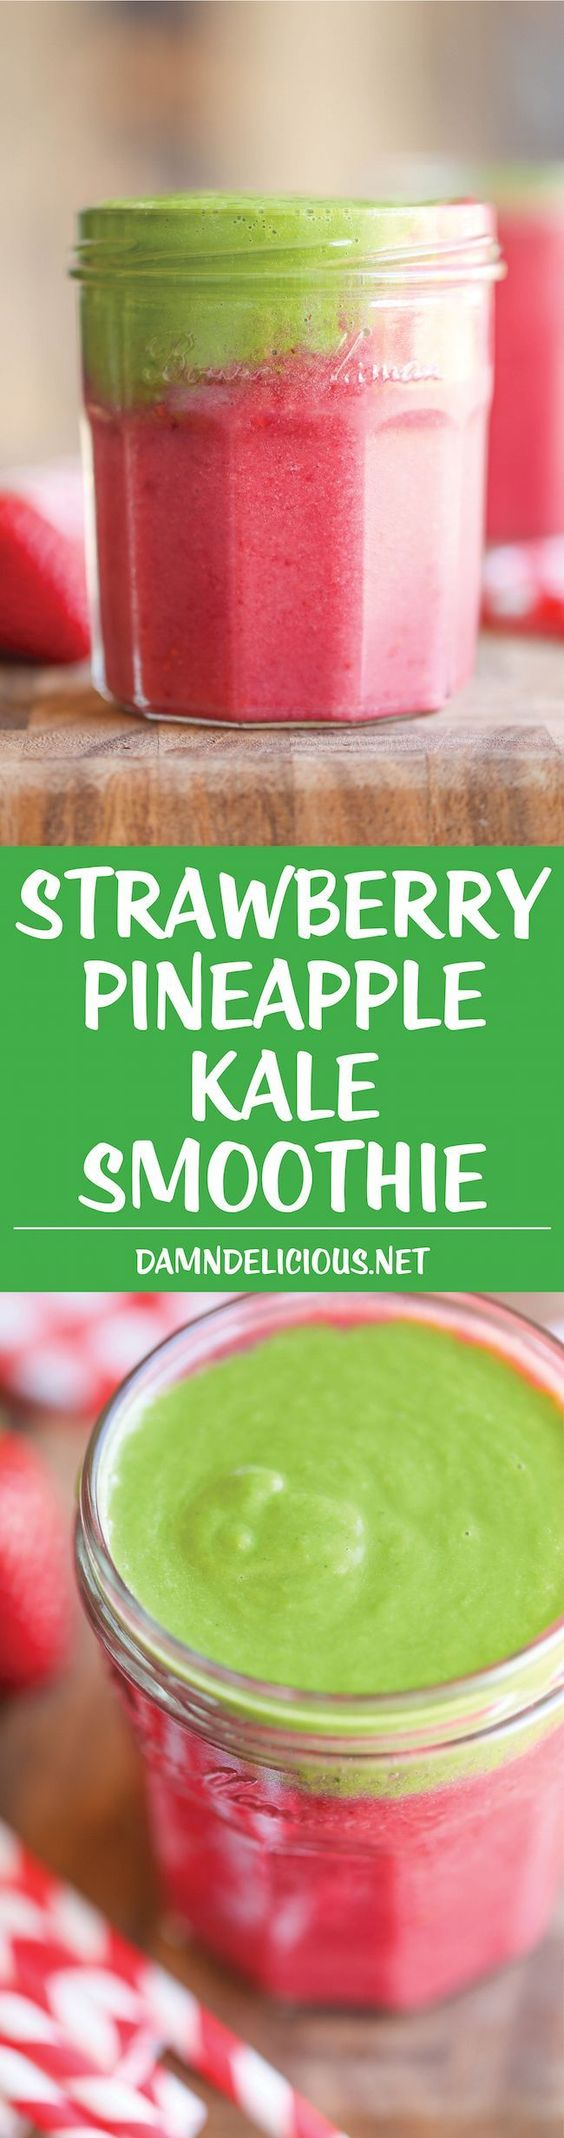 Strawberry-Pineapple-Kale-Smoothie